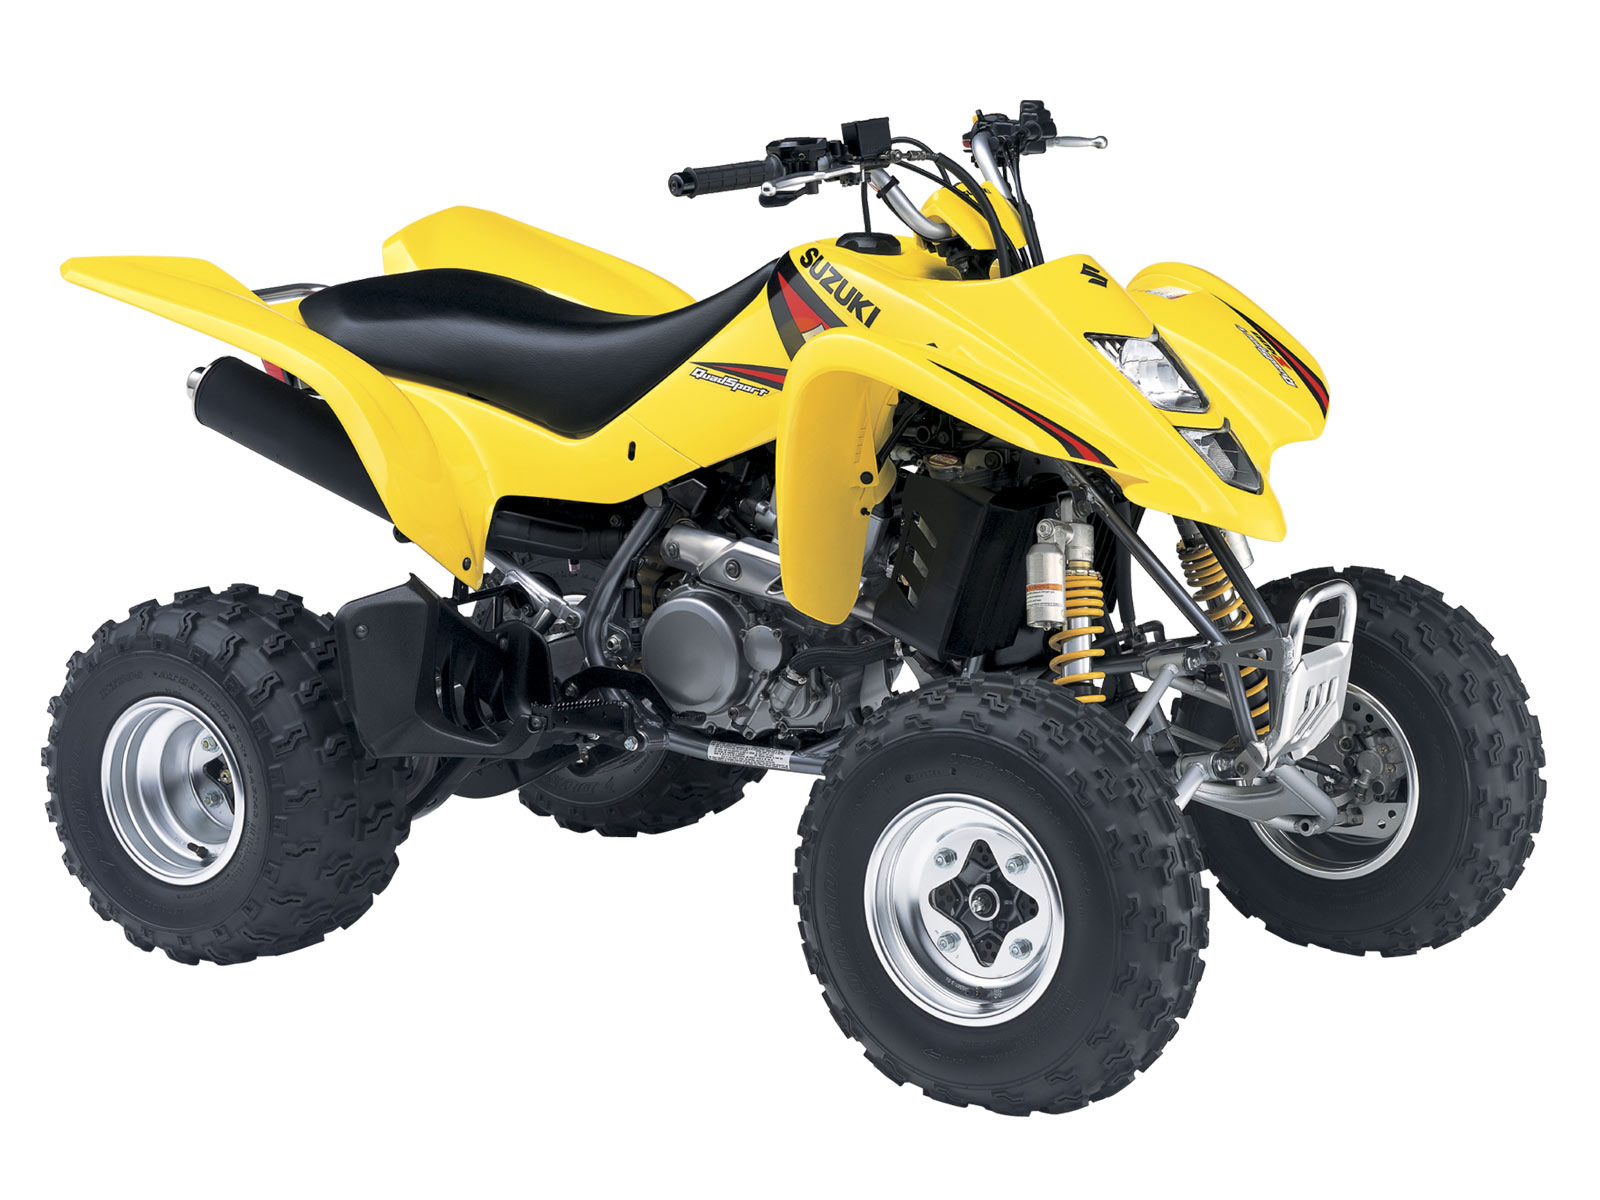 suzuki atv pictures 2005 quadsport ltz 400 accident lawyers. Black Bedroom Furniture Sets. Home Design Ideas